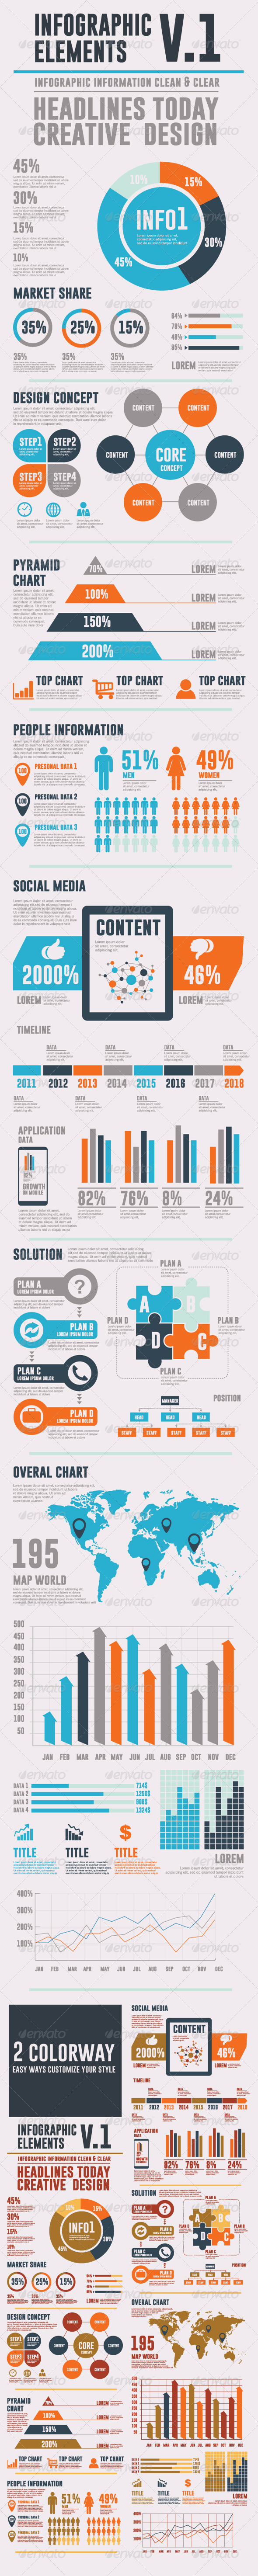 GraphicRiver Infographic Elements V.1 5779344